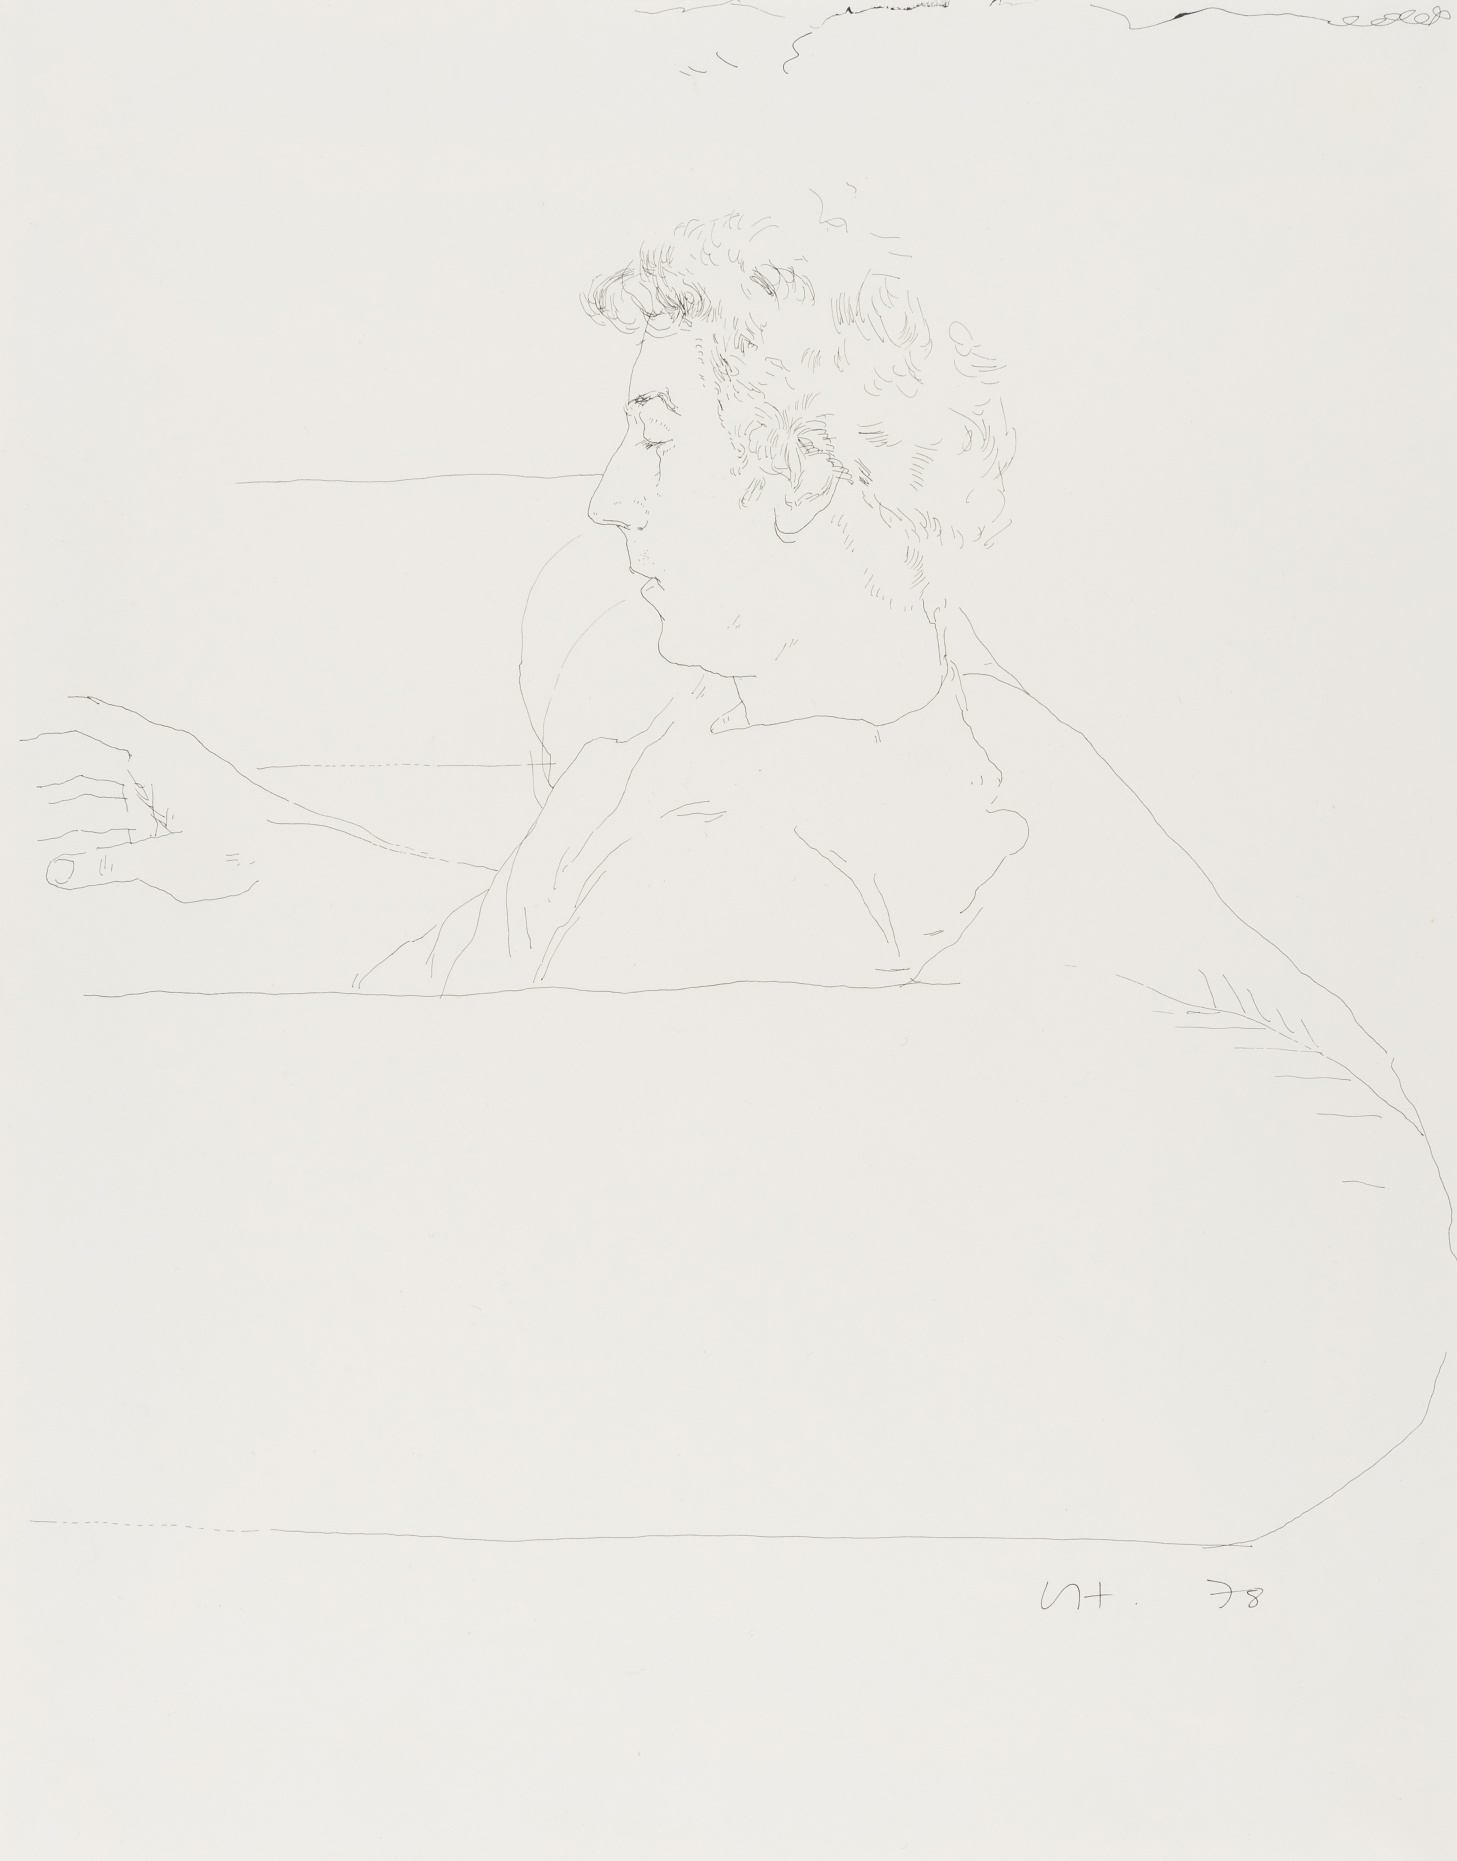 大衛·霍克尼(David Hockney), 沙發上的Gregory, India ink on paper, 1978 預估: £25,000-35,000